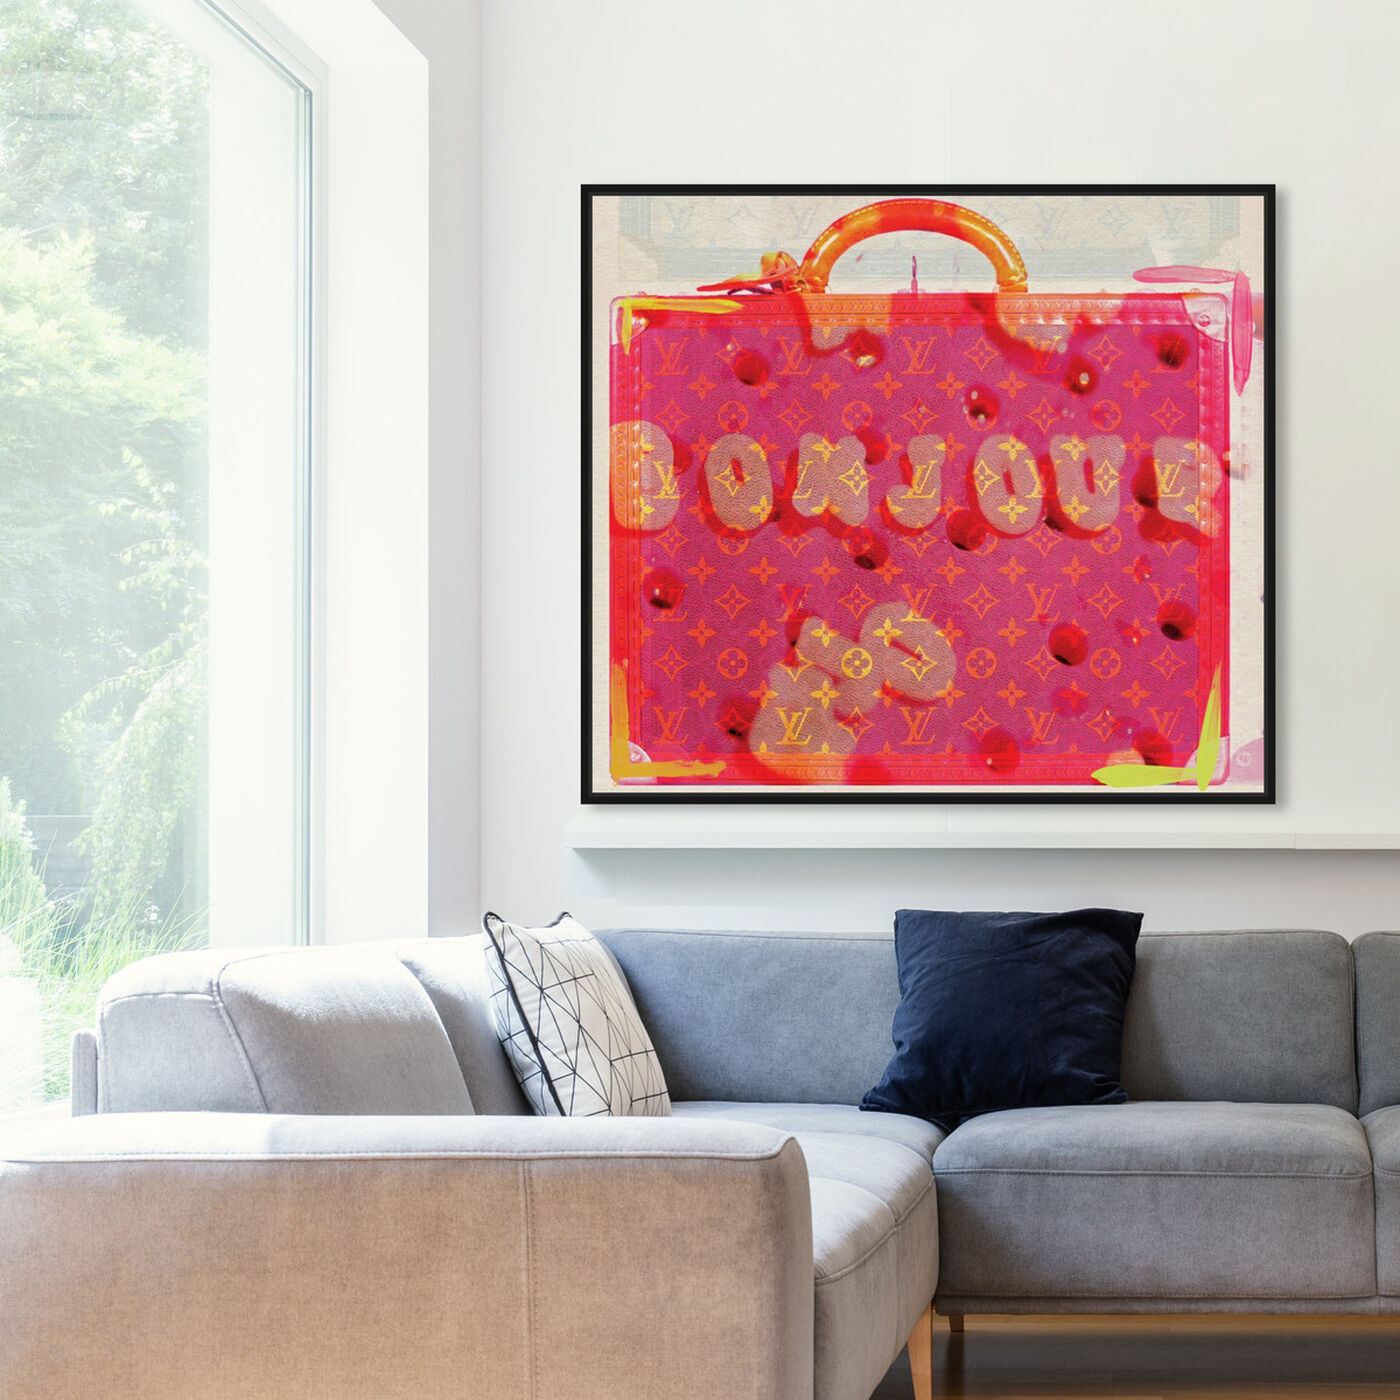 Hanging view of Bonjour featuring fashion and glam and handbags art.